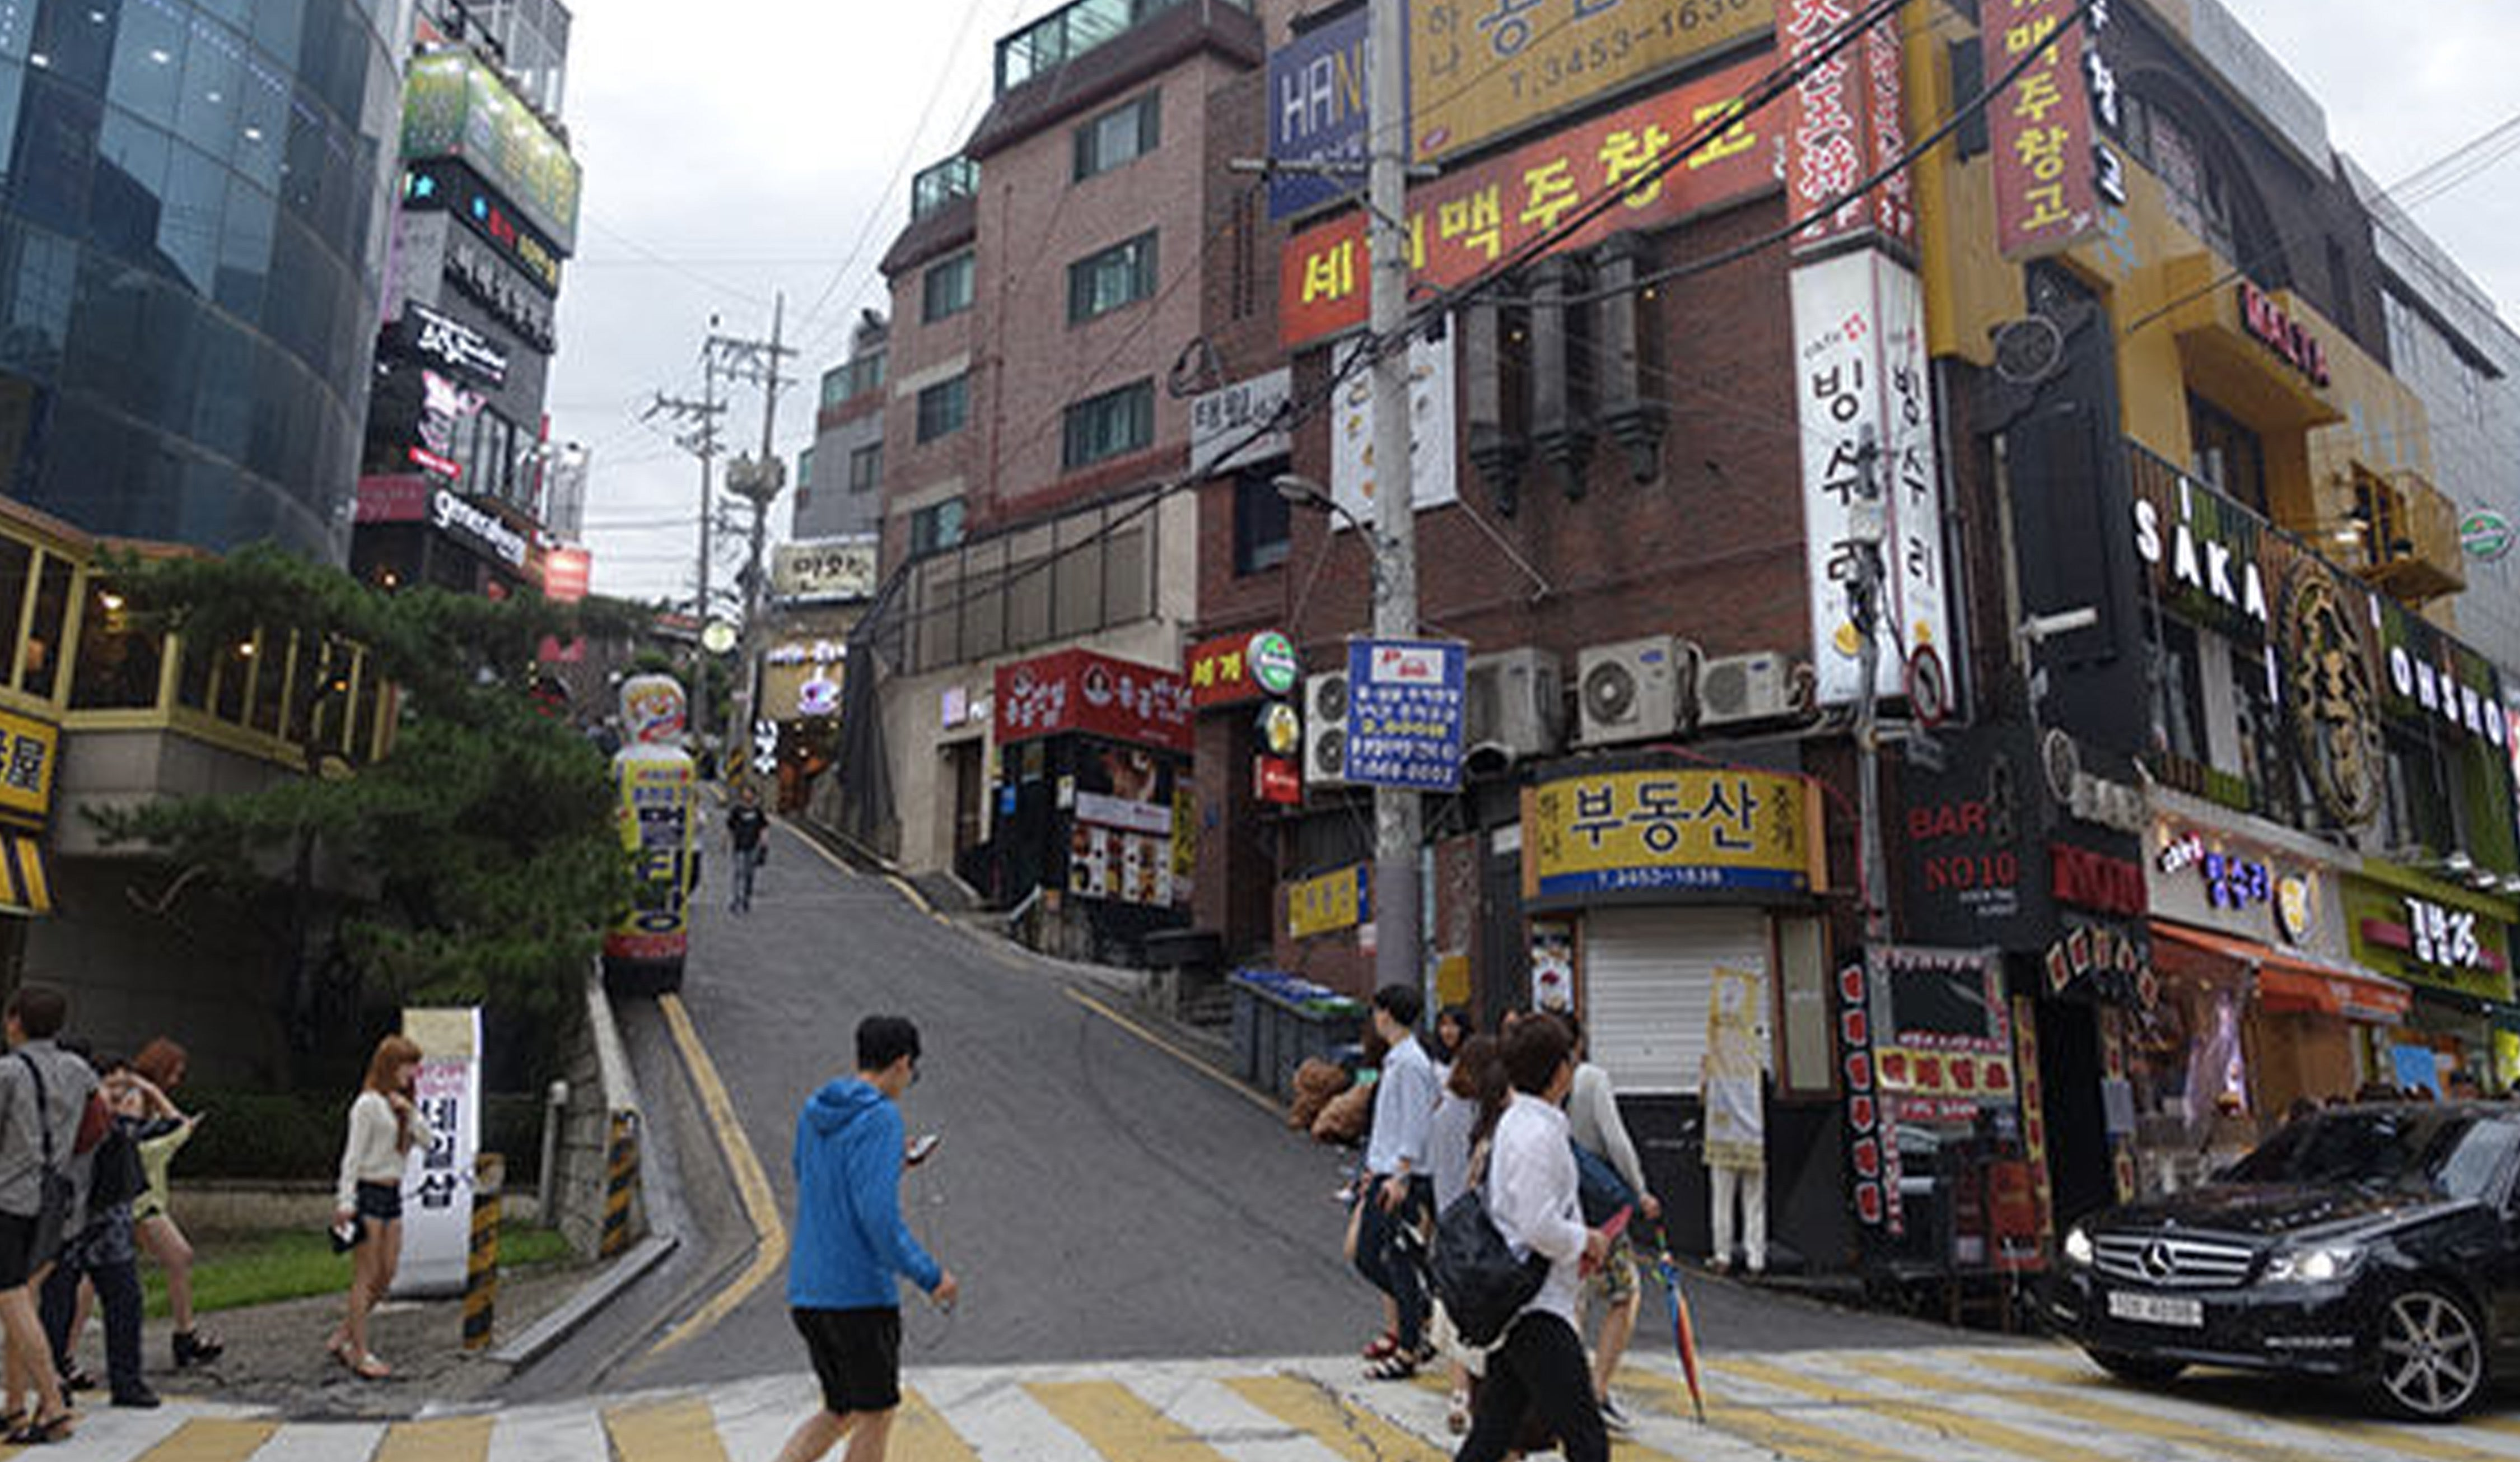 Gangnam style: the sewage of this district of Seoul reveals a high concentration of Viagra! Net Worth Space